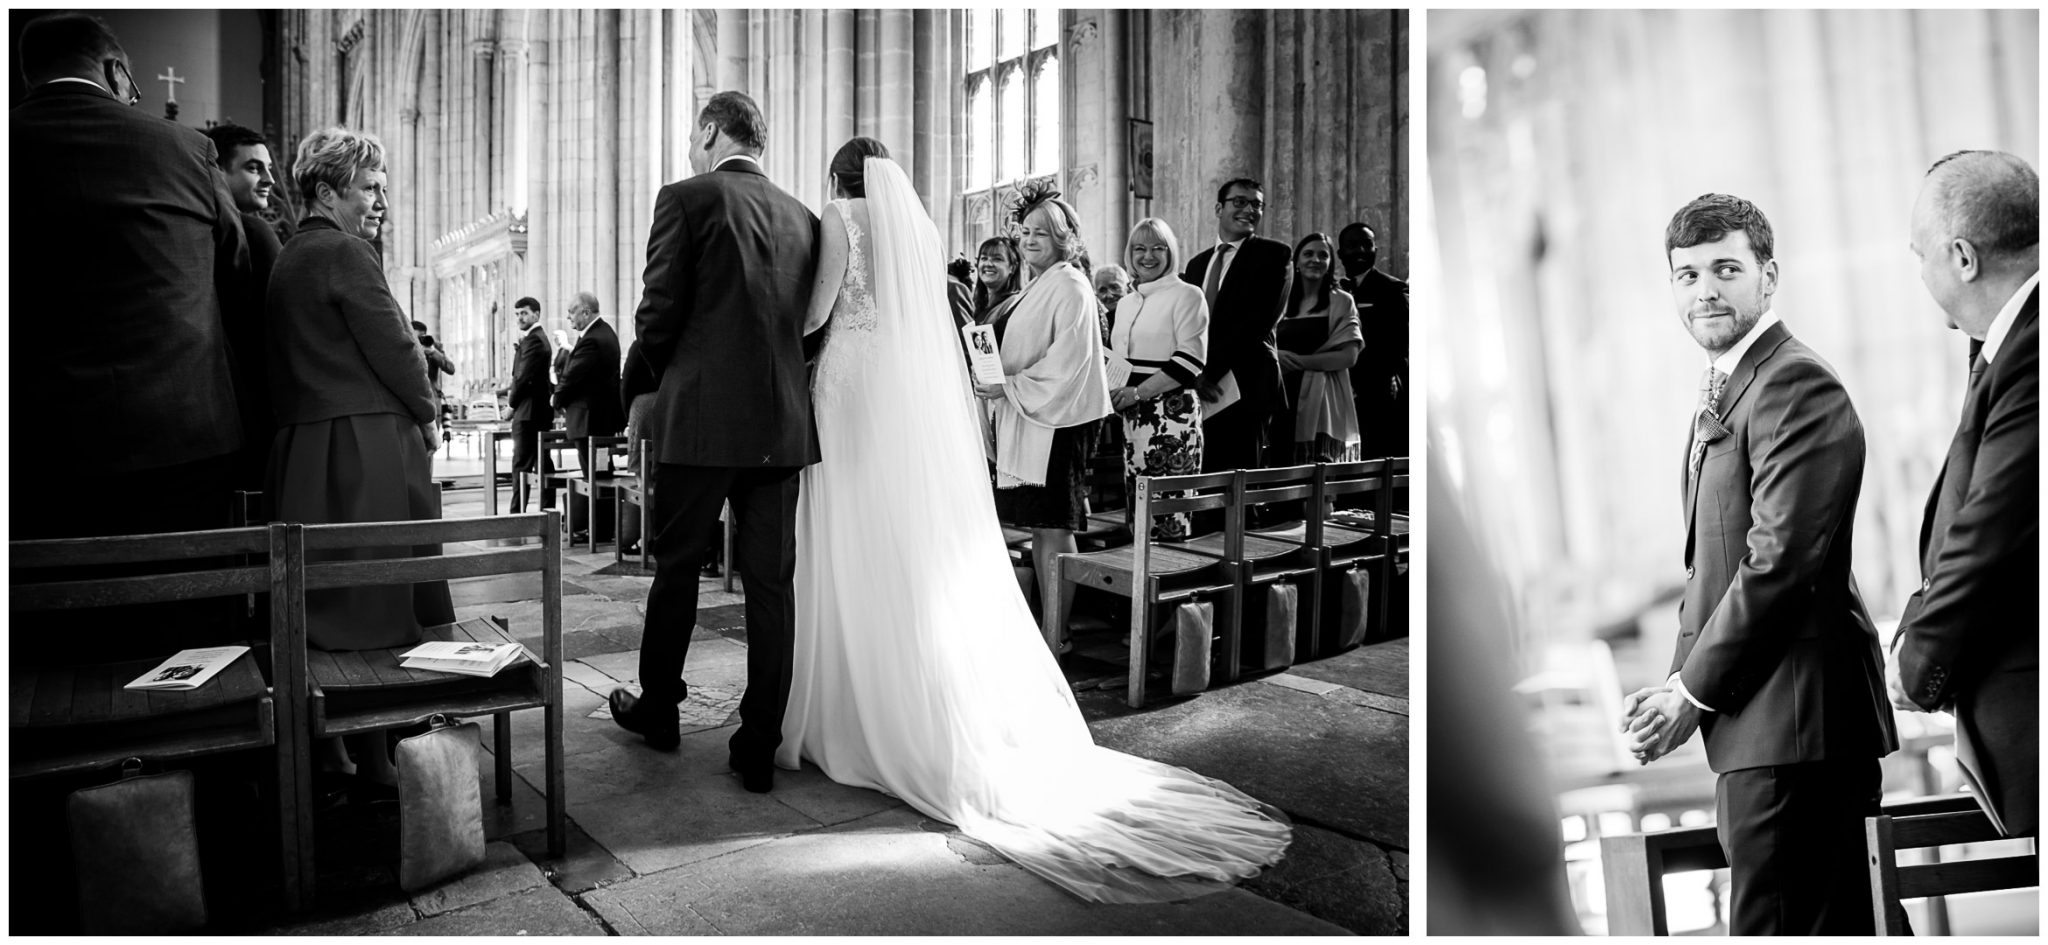 winchester cathedral wedding photography bride starts walk down aisle